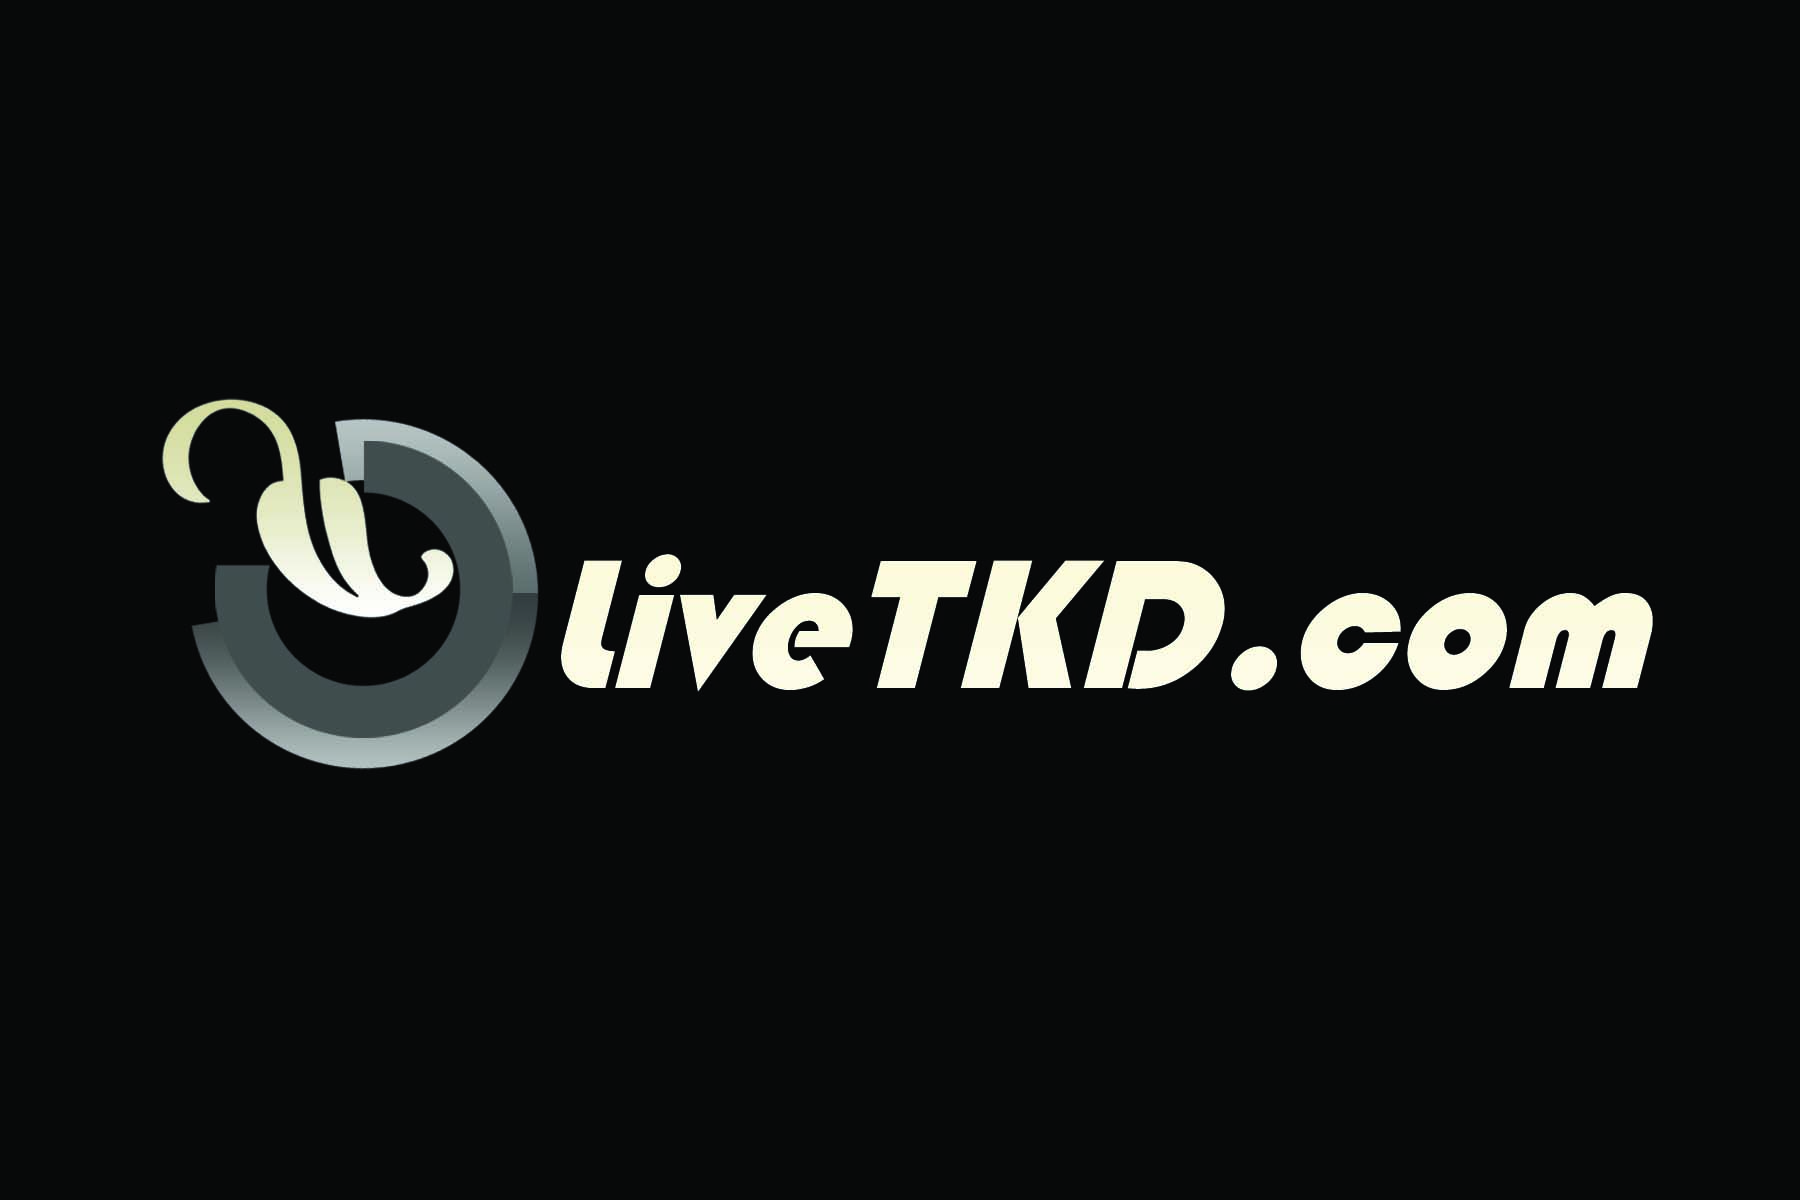 Logo Design by Jastinejay Manliguez - Entry No. 8 in the Logo Design Contest New Logo Design for LiveTKD.com.